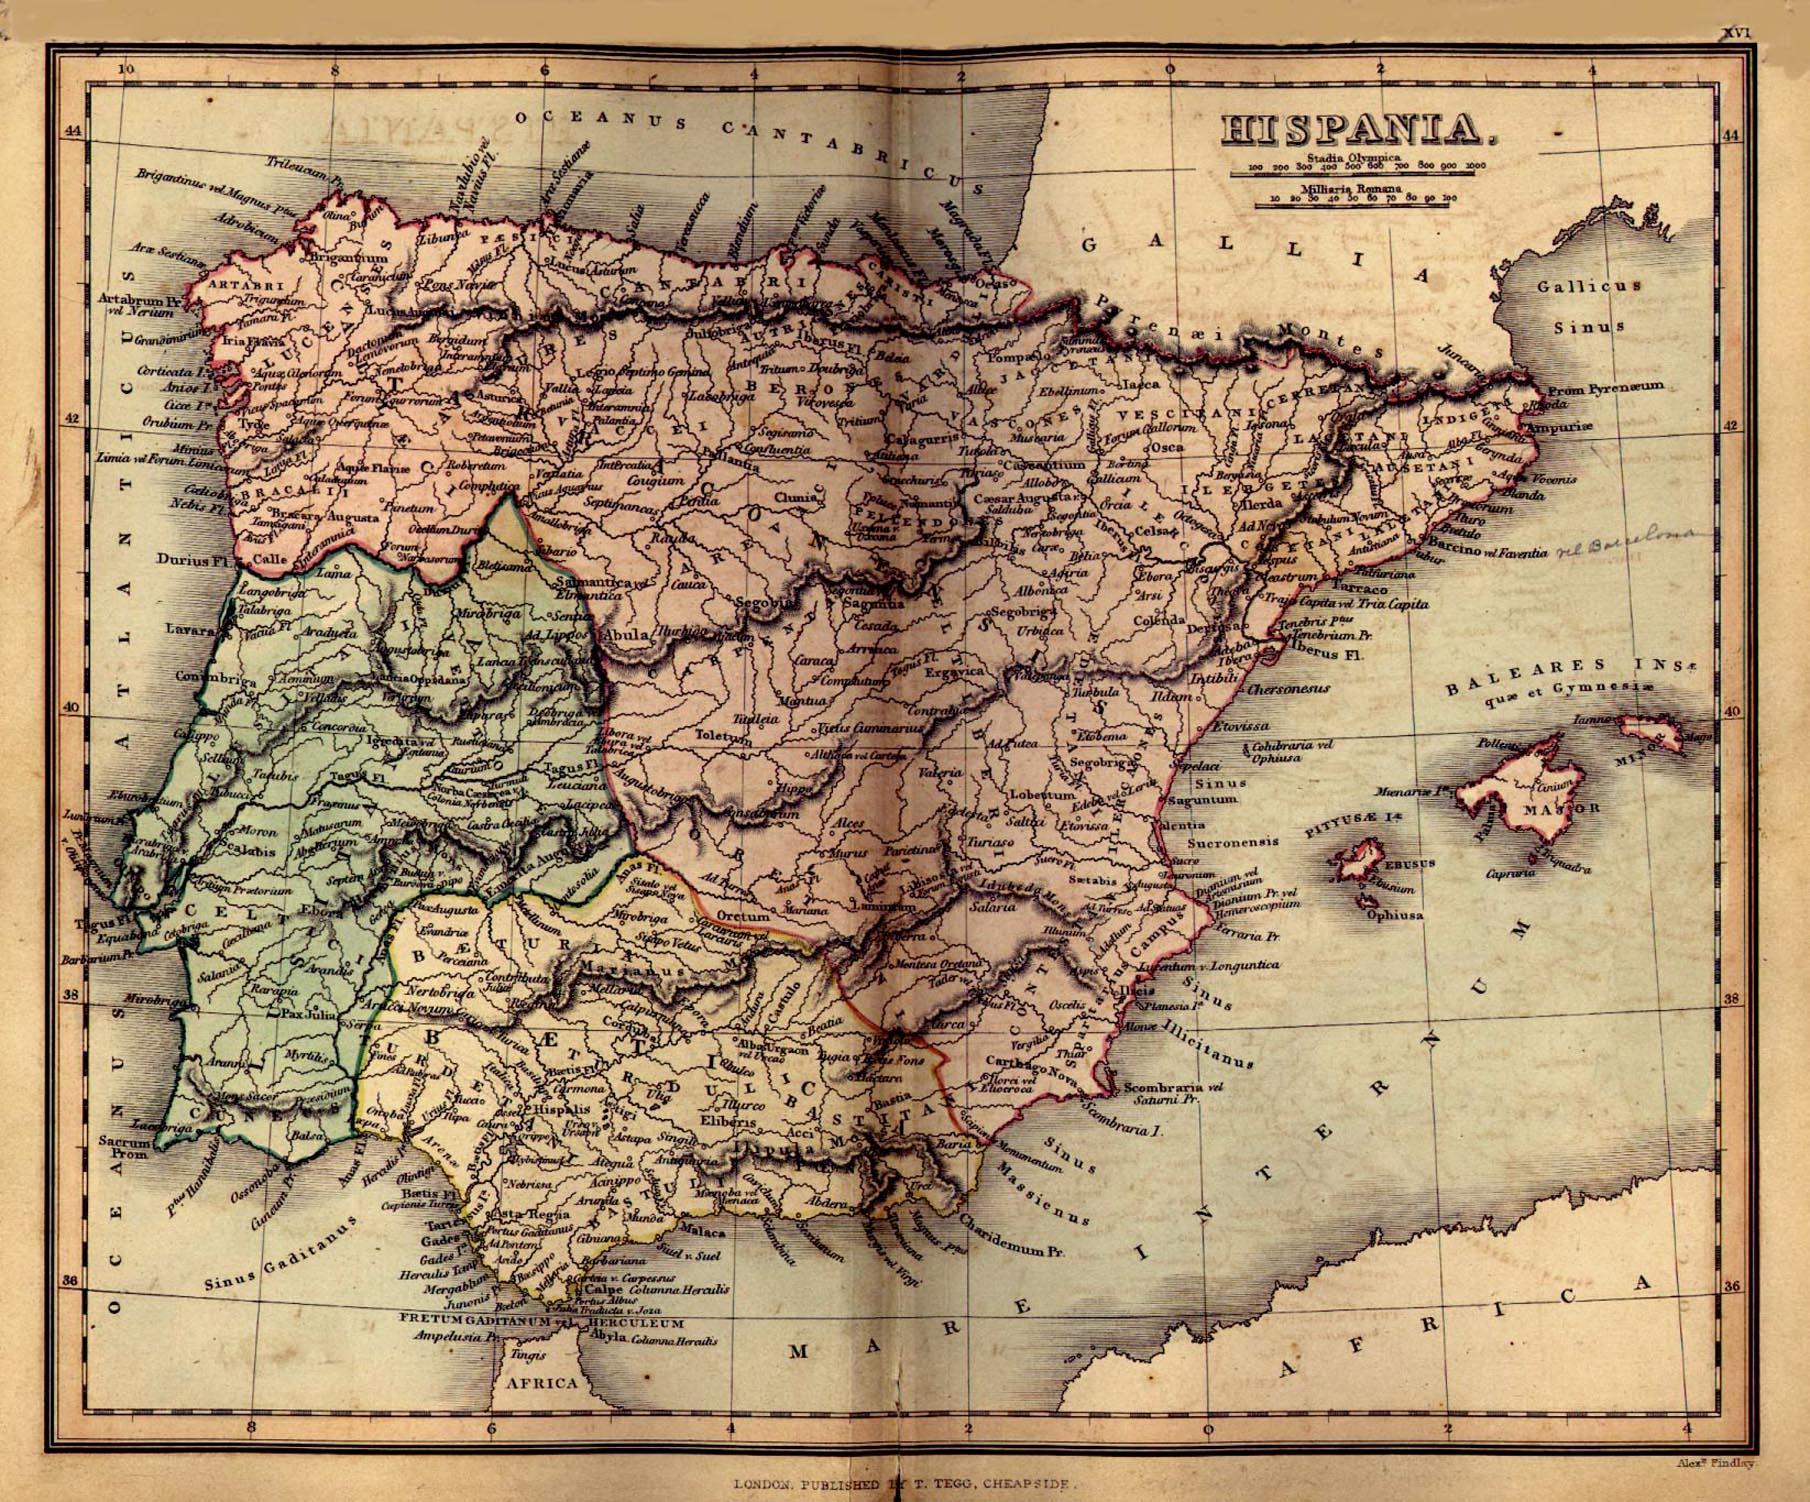 Spain Maps PerryCastañeda Map Collection UT Library Online - Spain historical map